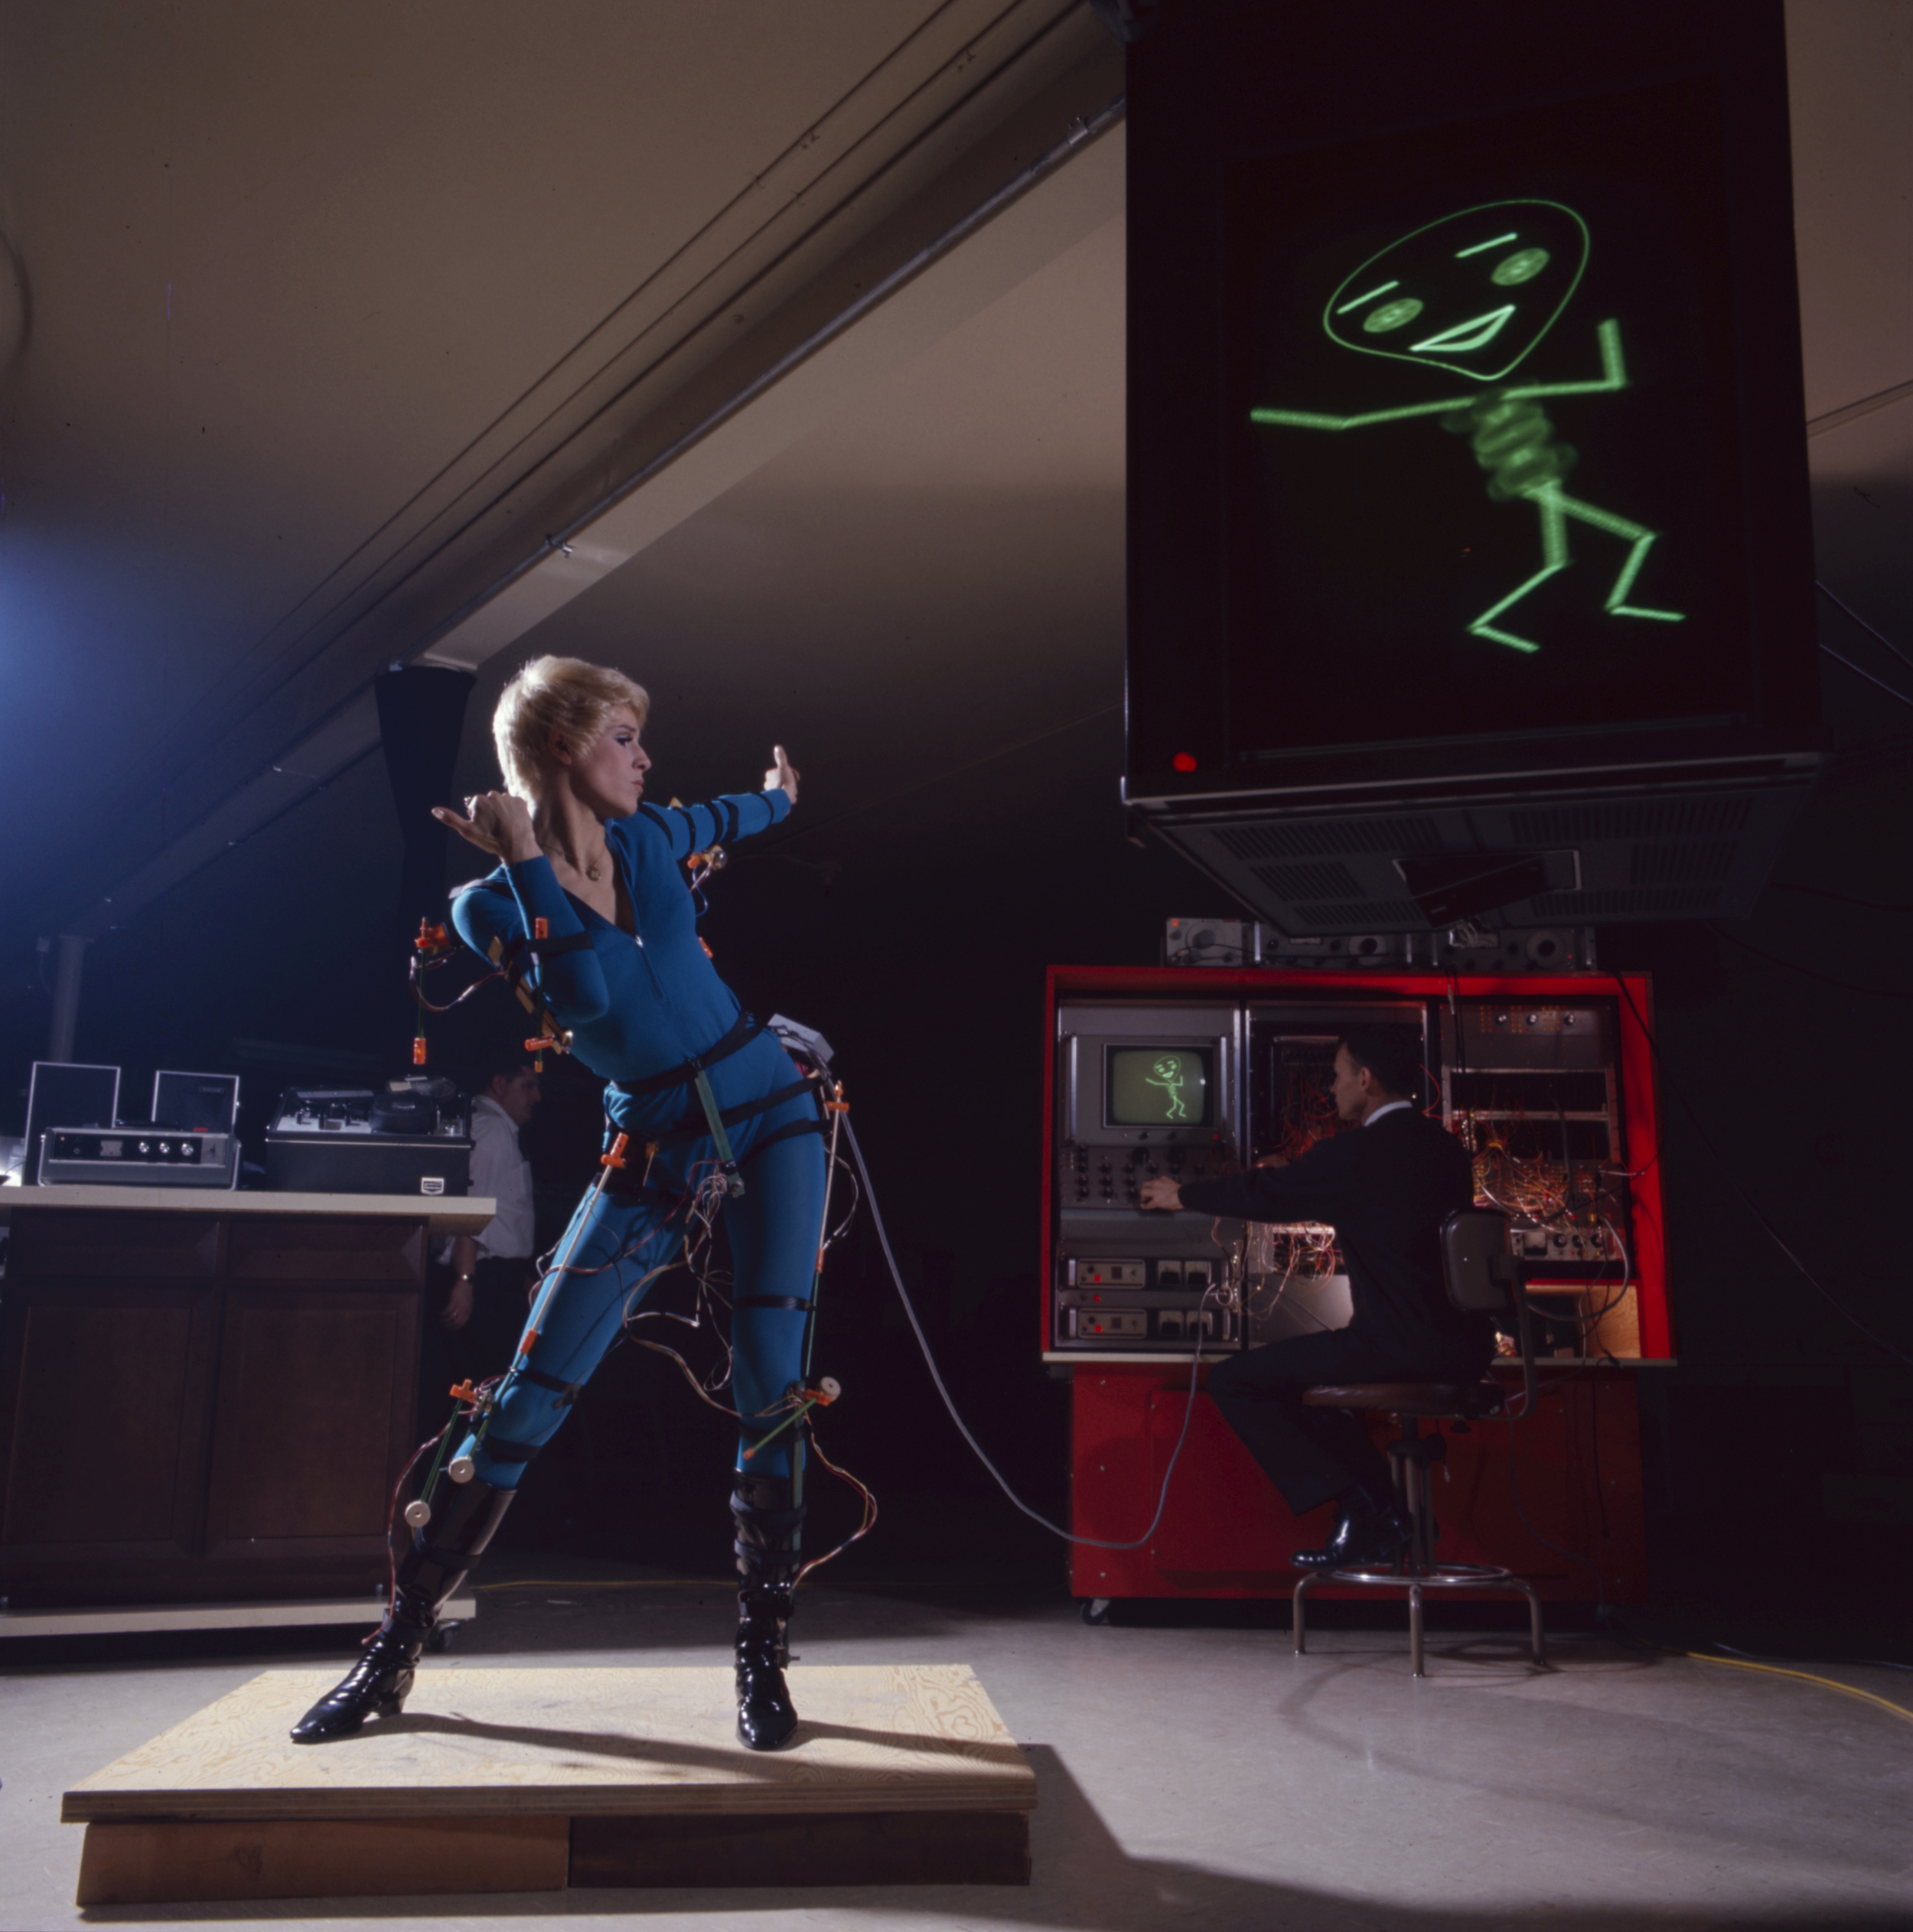 This Is What 1970s Motion Capture Tech Looked Like - VICE